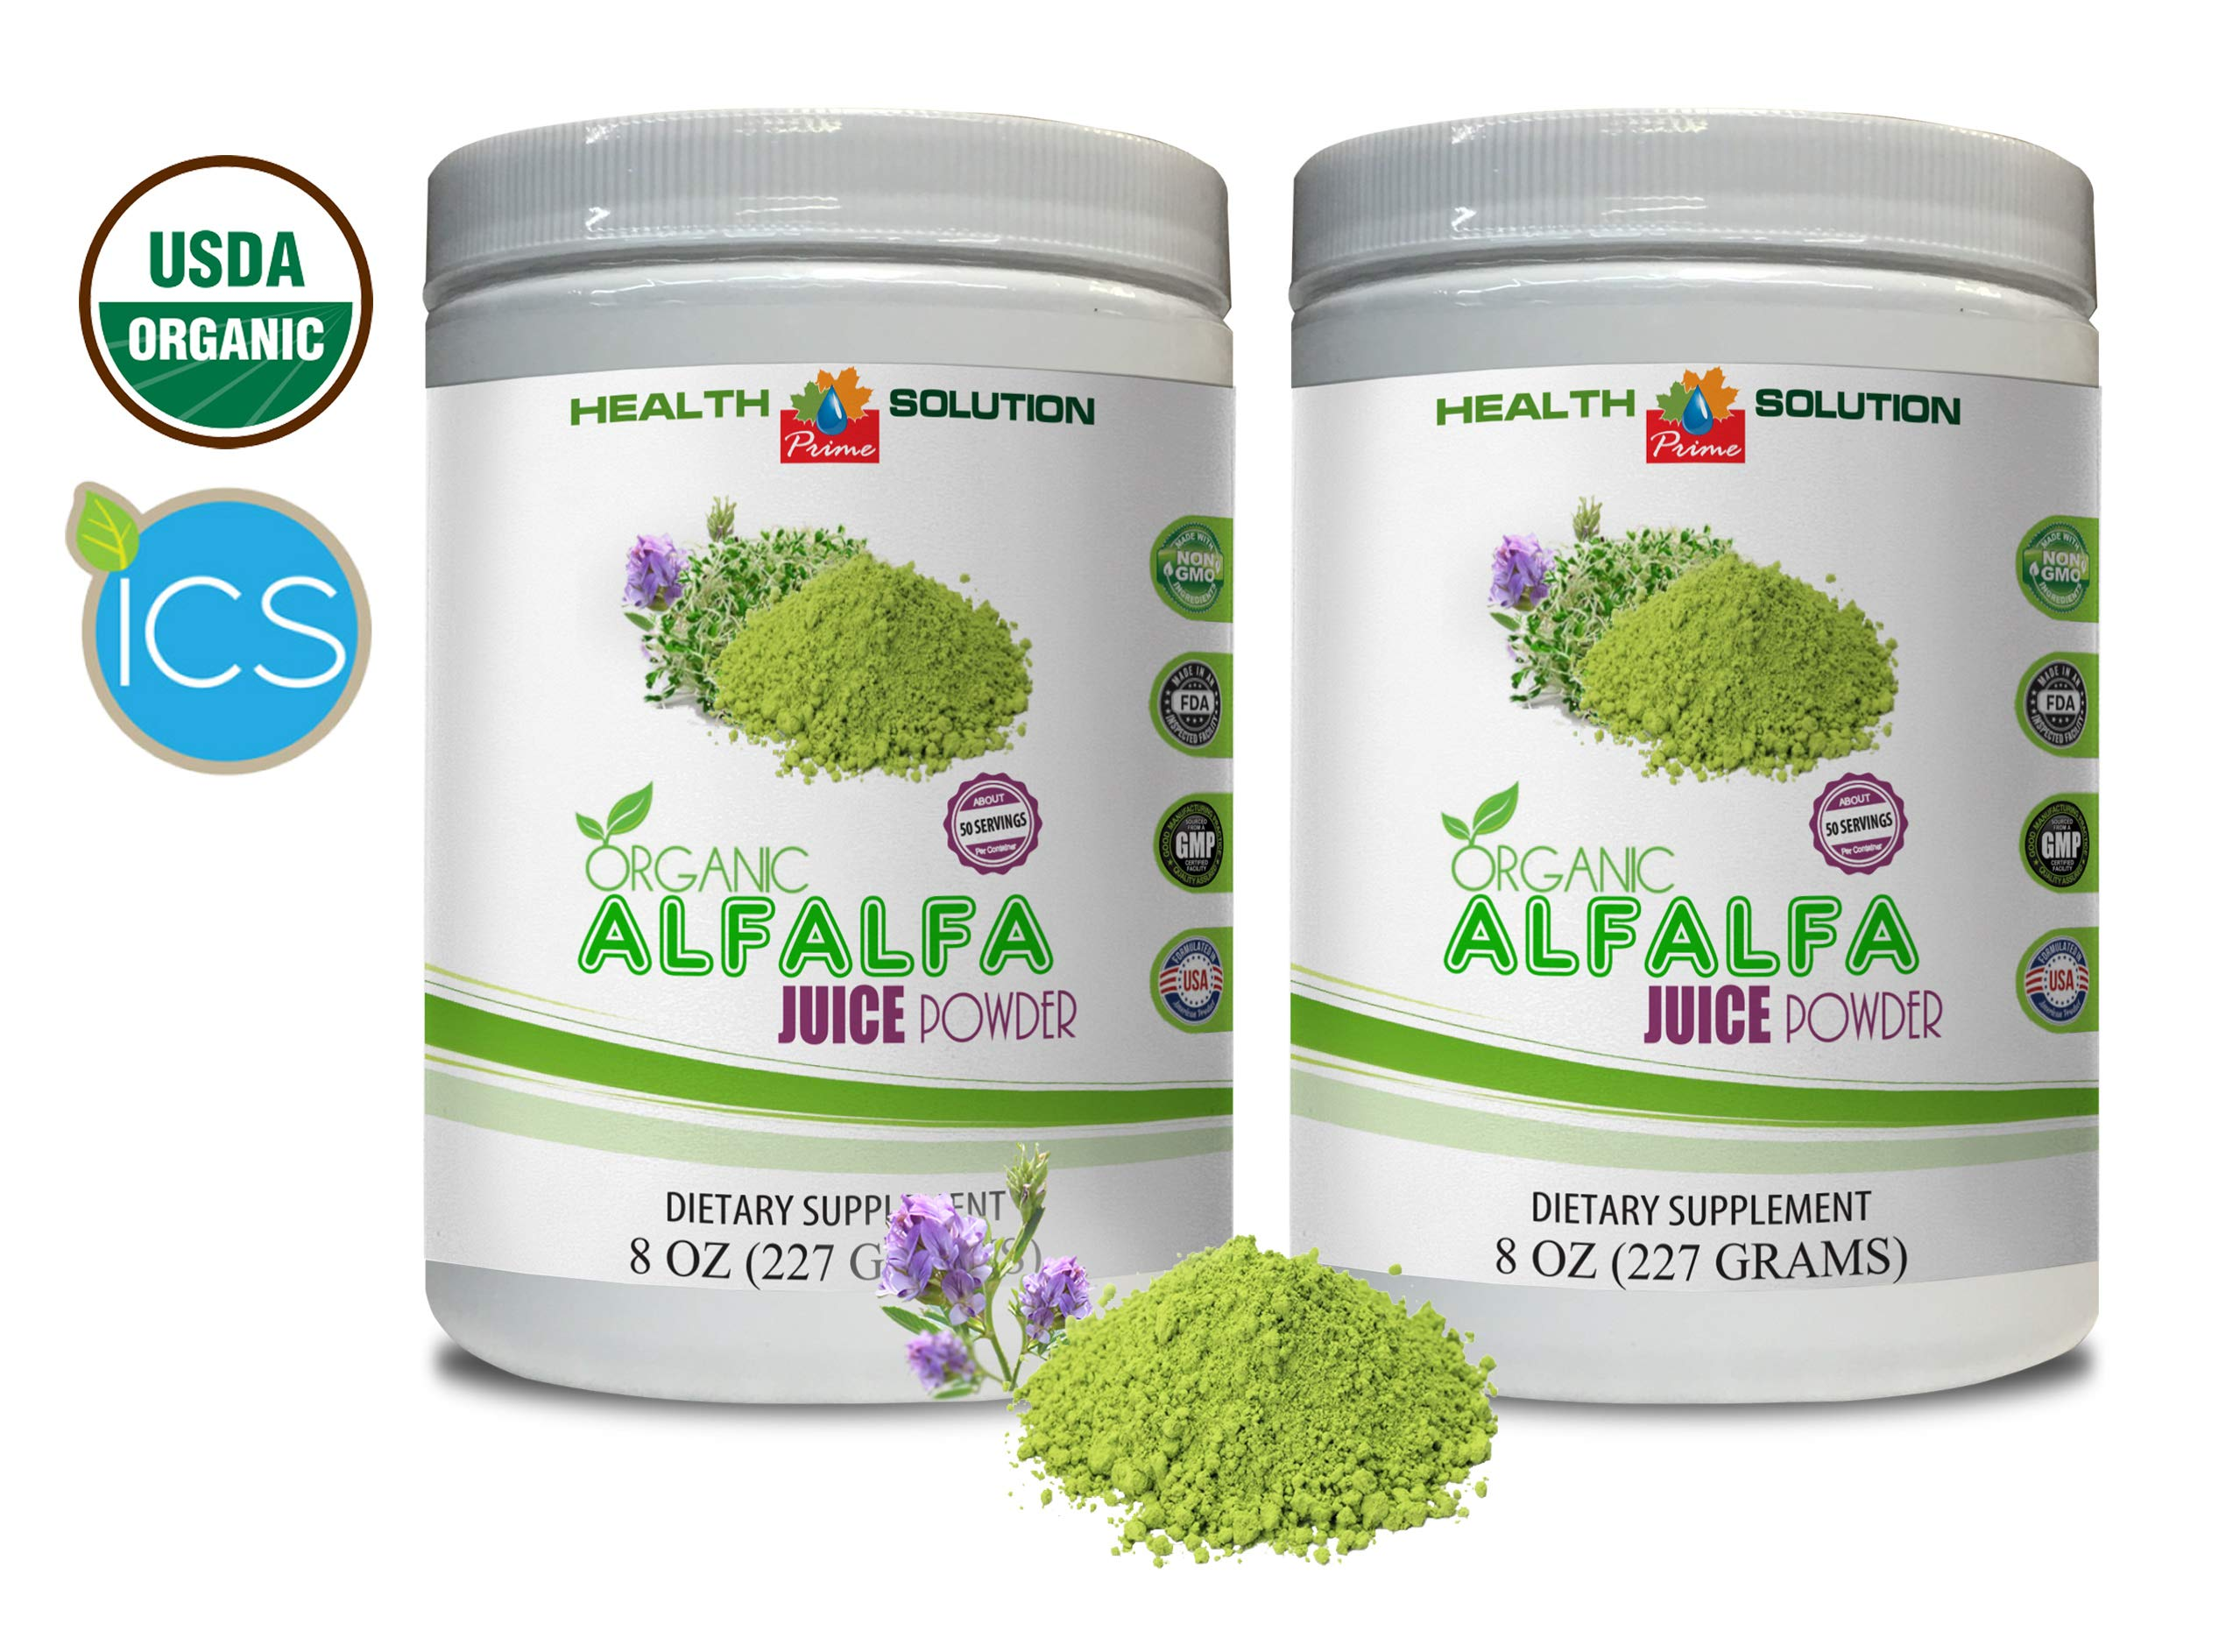 antioxidant Amazing Grass - Organic Alfalfa Juice Powder - Alfalfa Powder 1lb - 2 Cans 16 OZ (100 Servings)